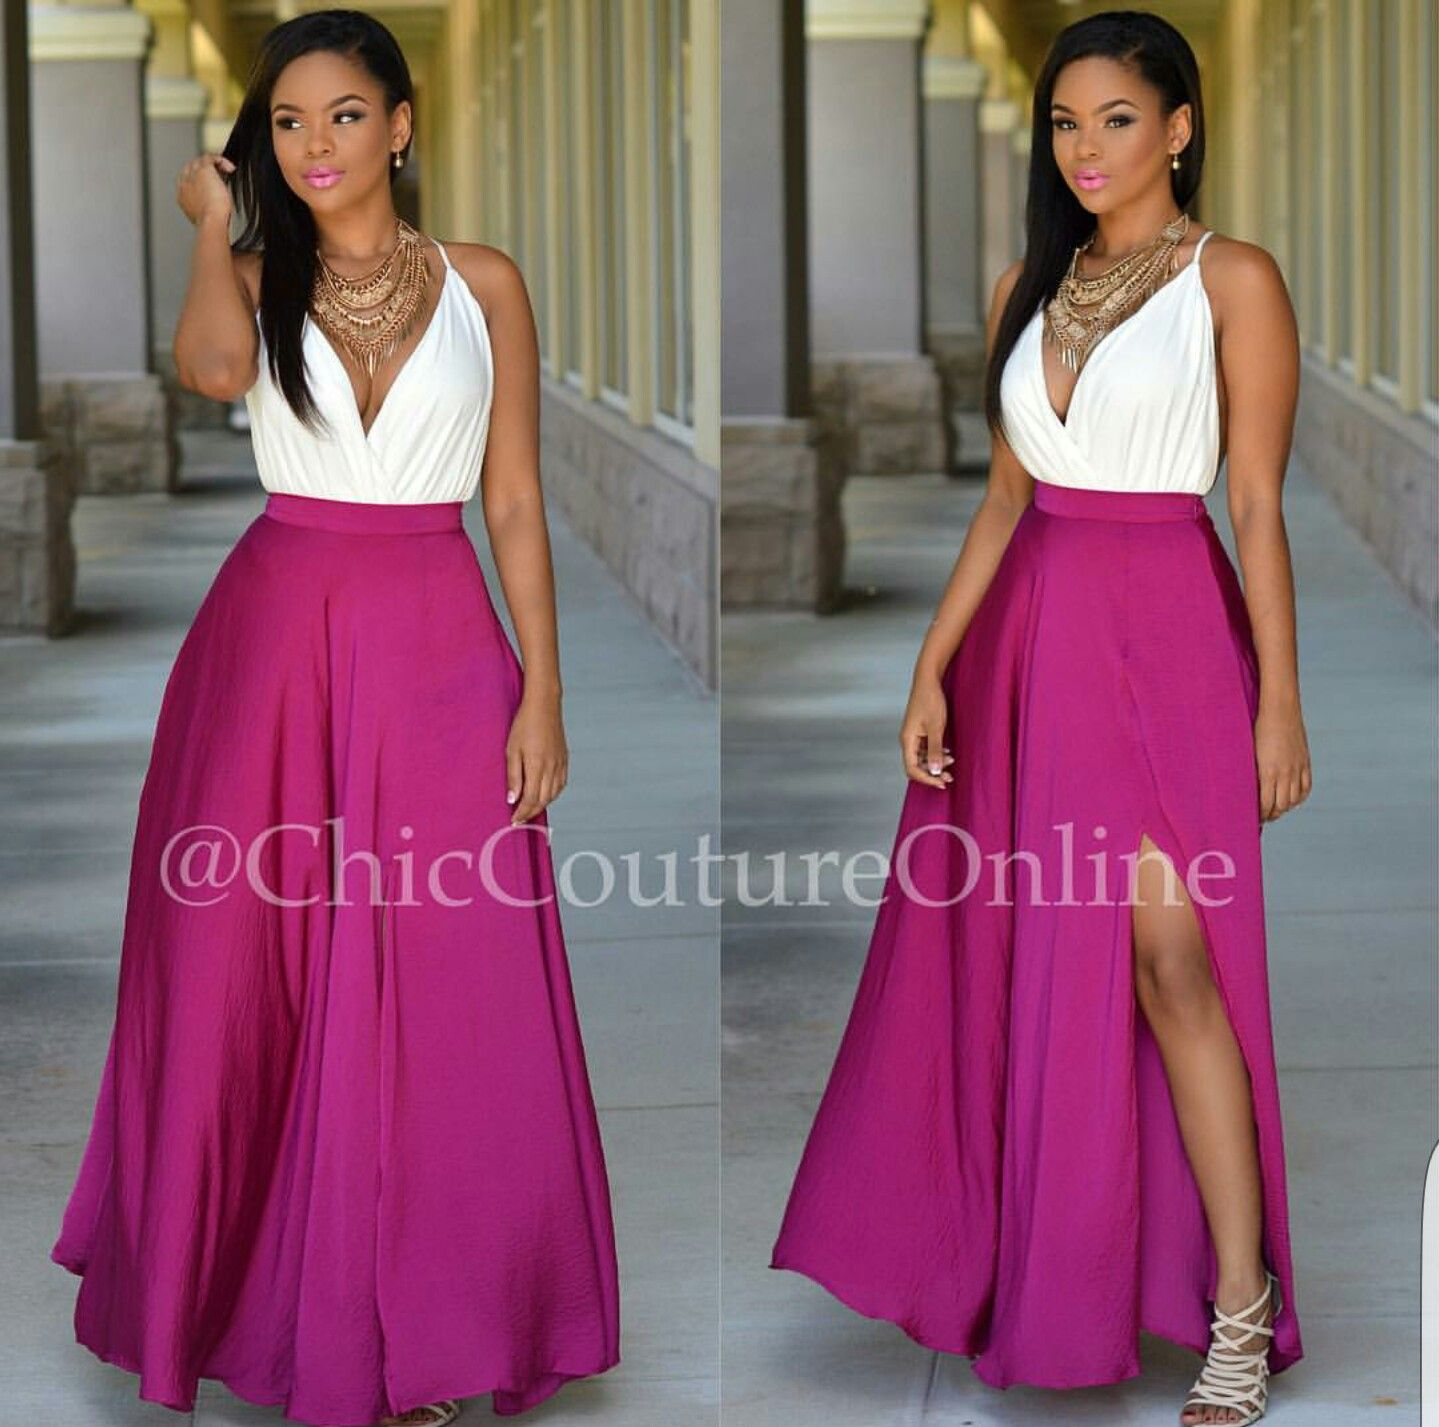 Love this colour! #chiccoutureonline